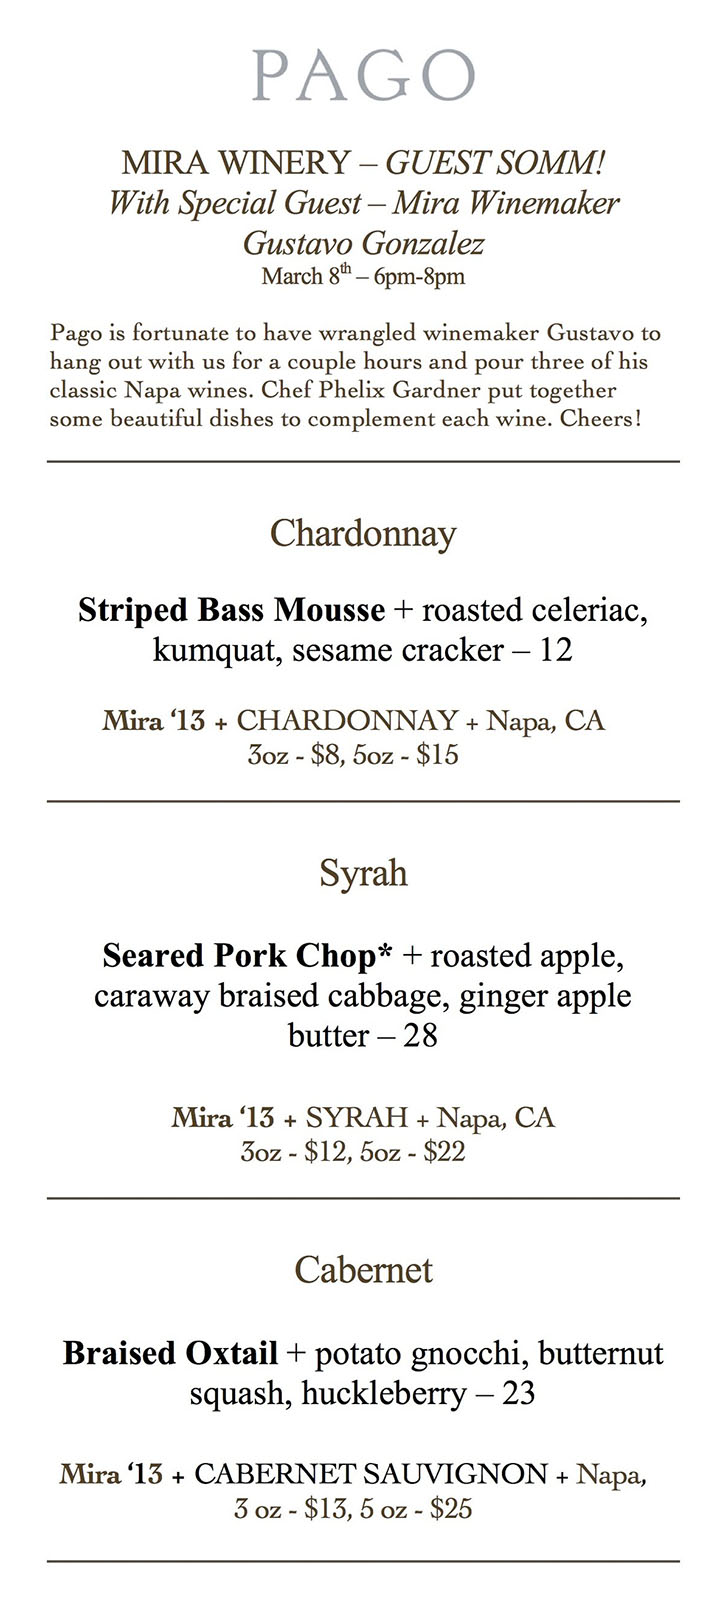 Pago - Mira Winery dinner menu